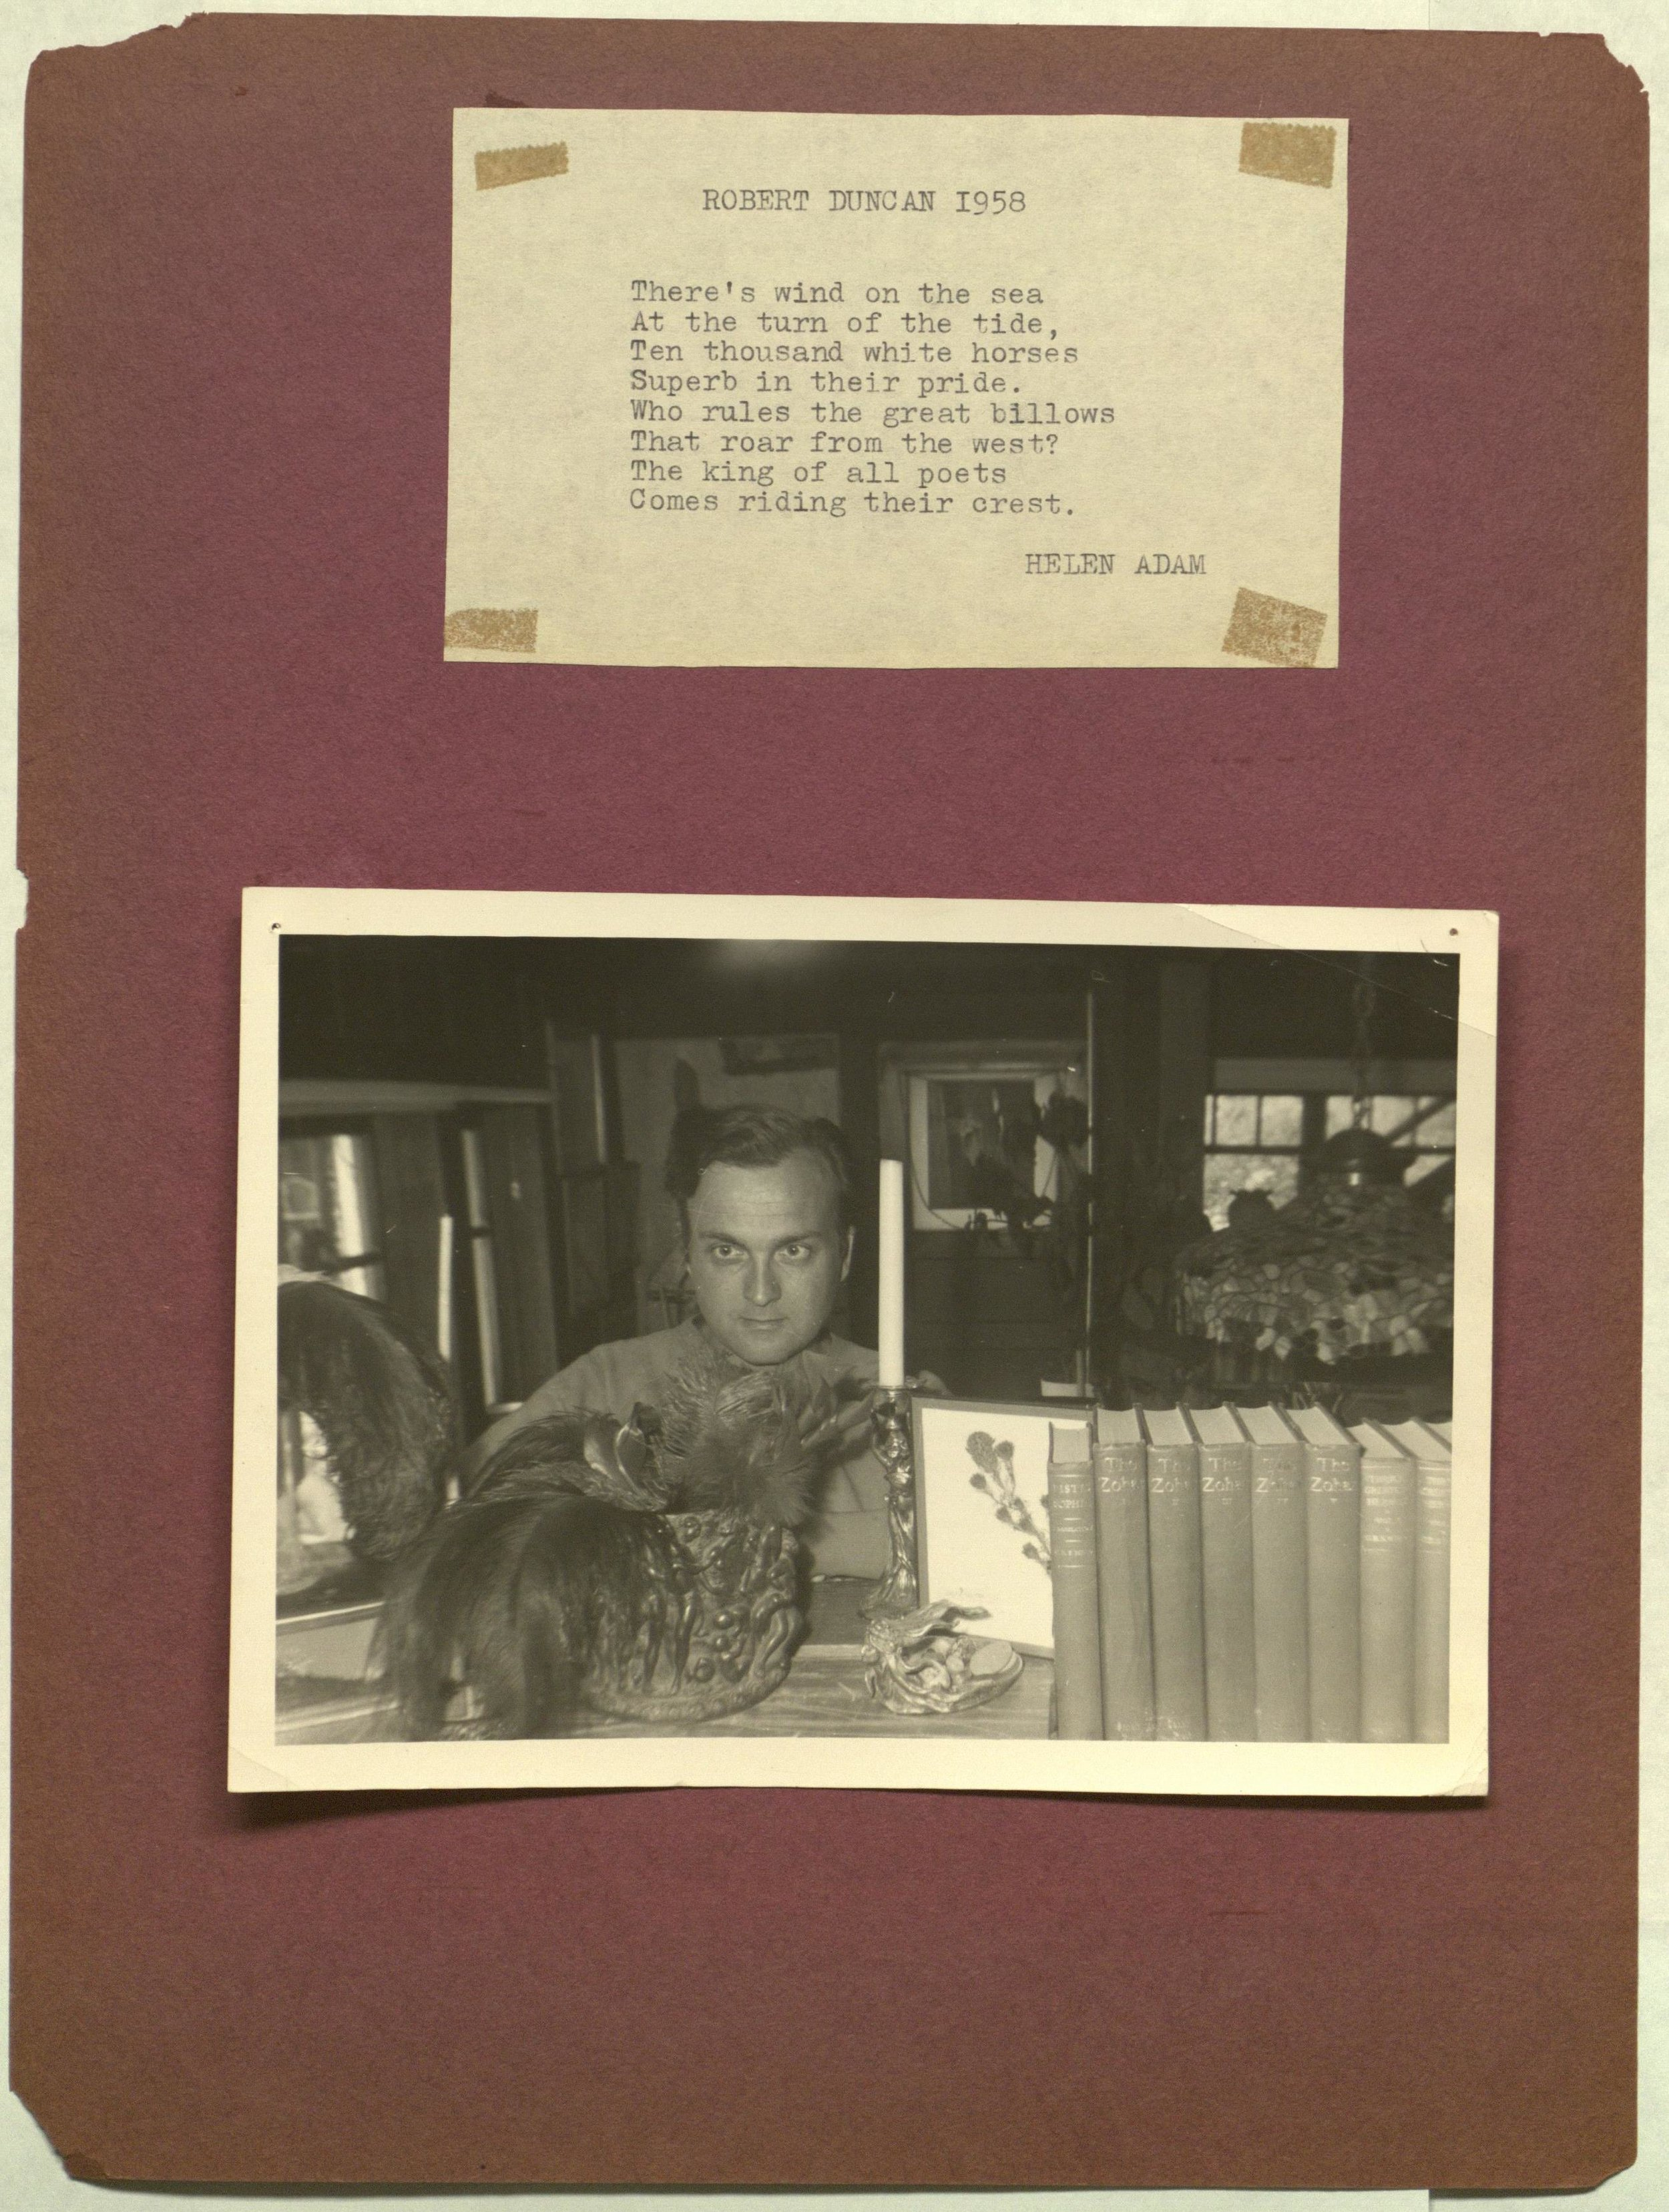 Helen Adam, Robert Duncan 1964 , 1964, photo-collage. Credit: The Poetry Collection of the University Libraries, University at Buffalo, The State University of New York.